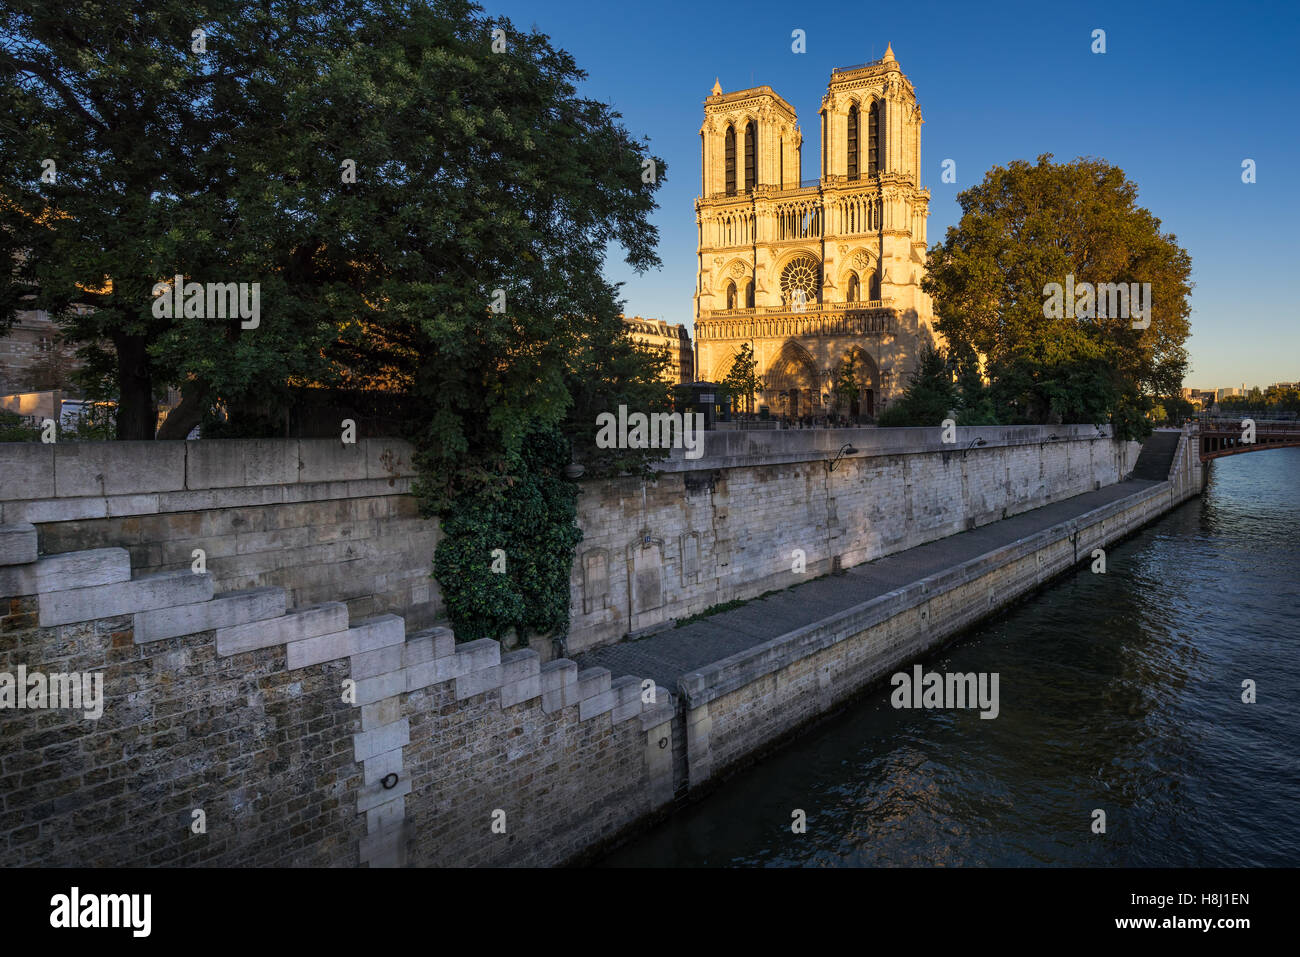 Notre Dame de Paris cathedral at sunset with the Seine River on Ile de La Cite. 4th Arrondissement, Paris, France - Stock Image